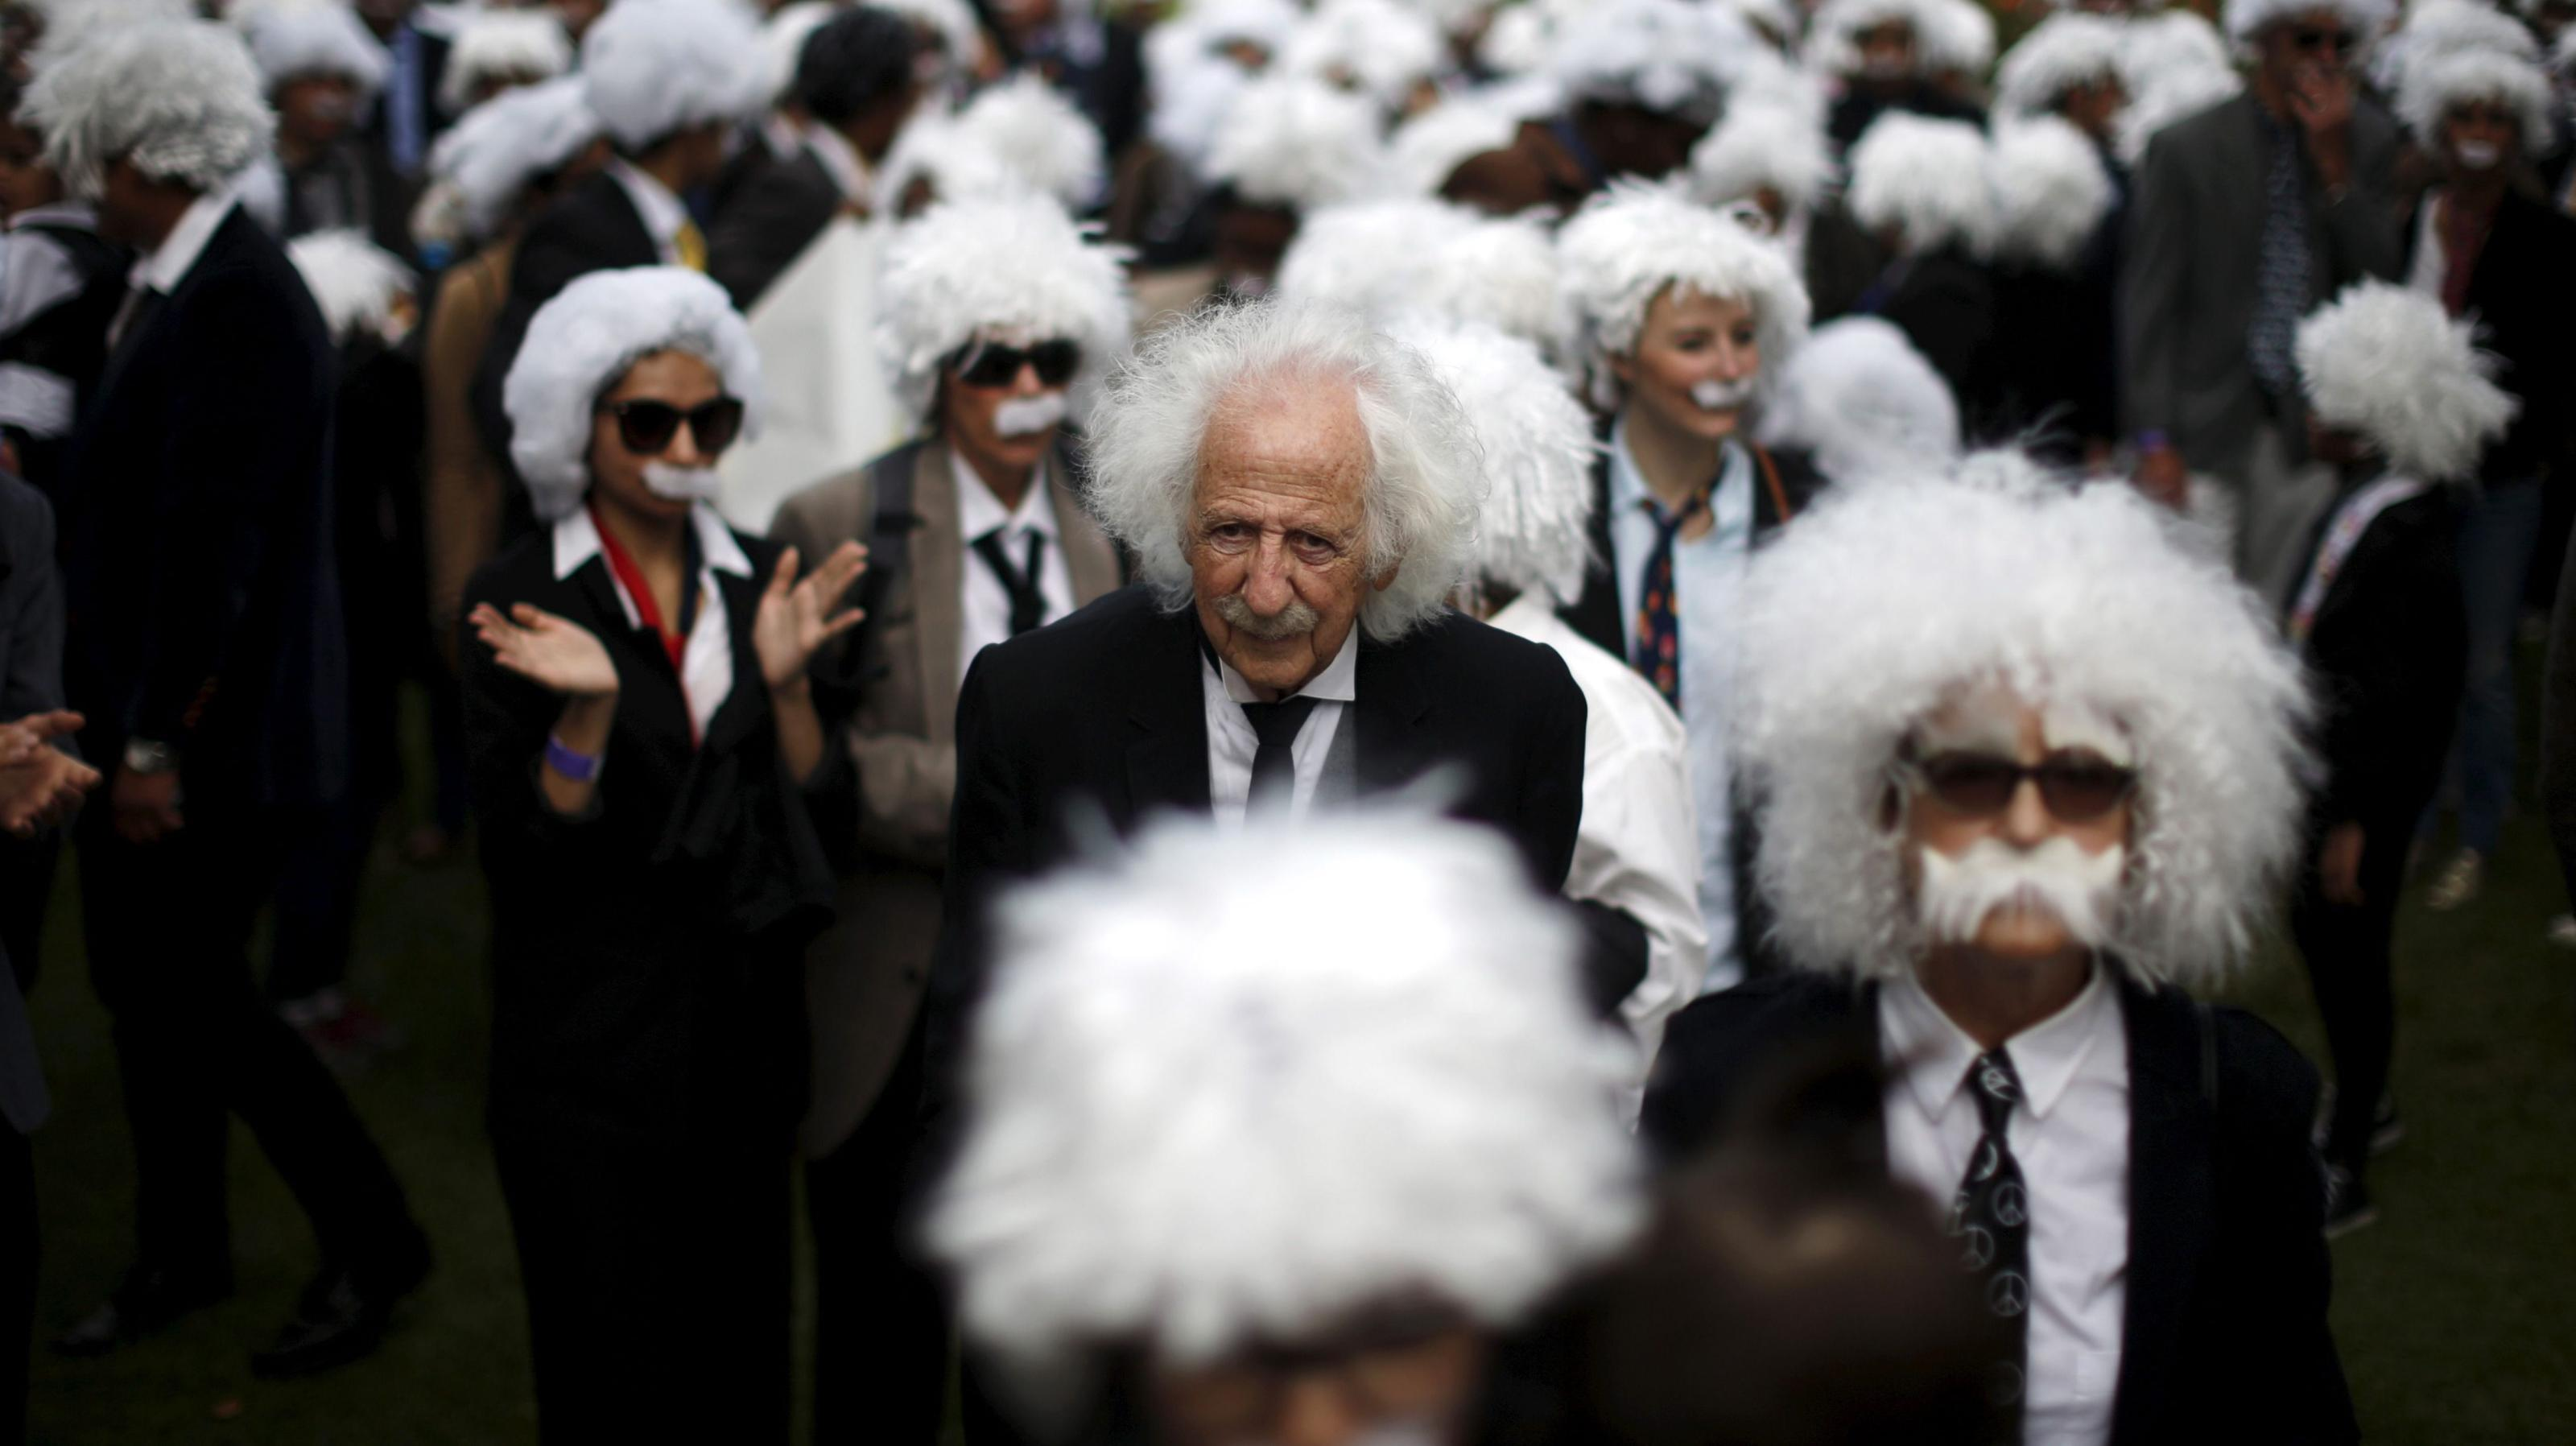 Einstein's most effective life hack wasn't about productivity